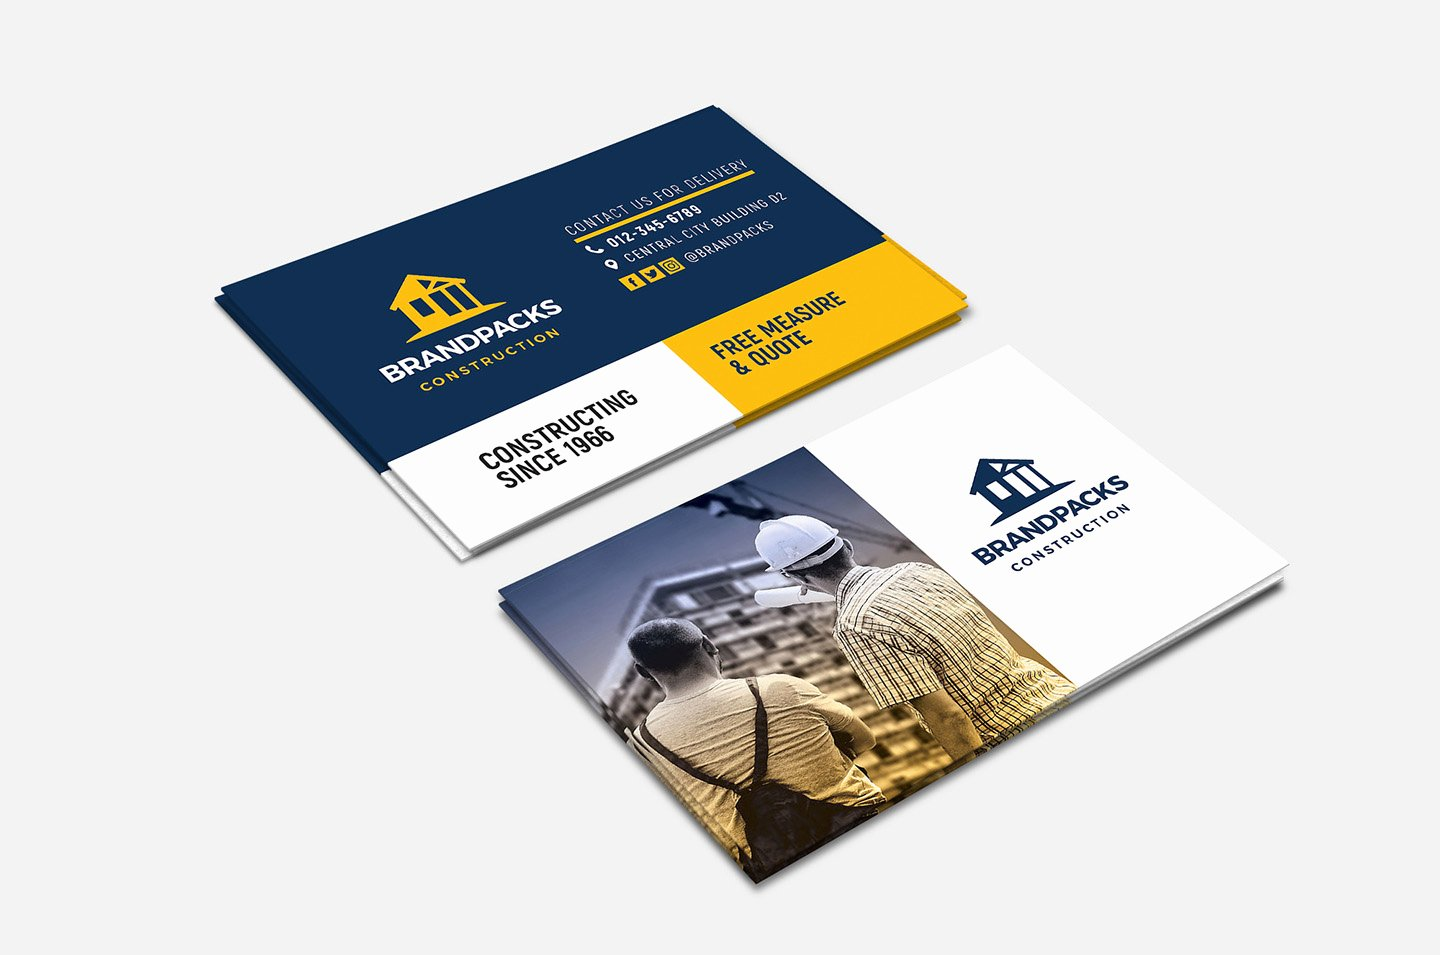 Construction Company Business Cards Elegant Construction Pany Business Card Template In Psd Ai & Vector Brandpacks